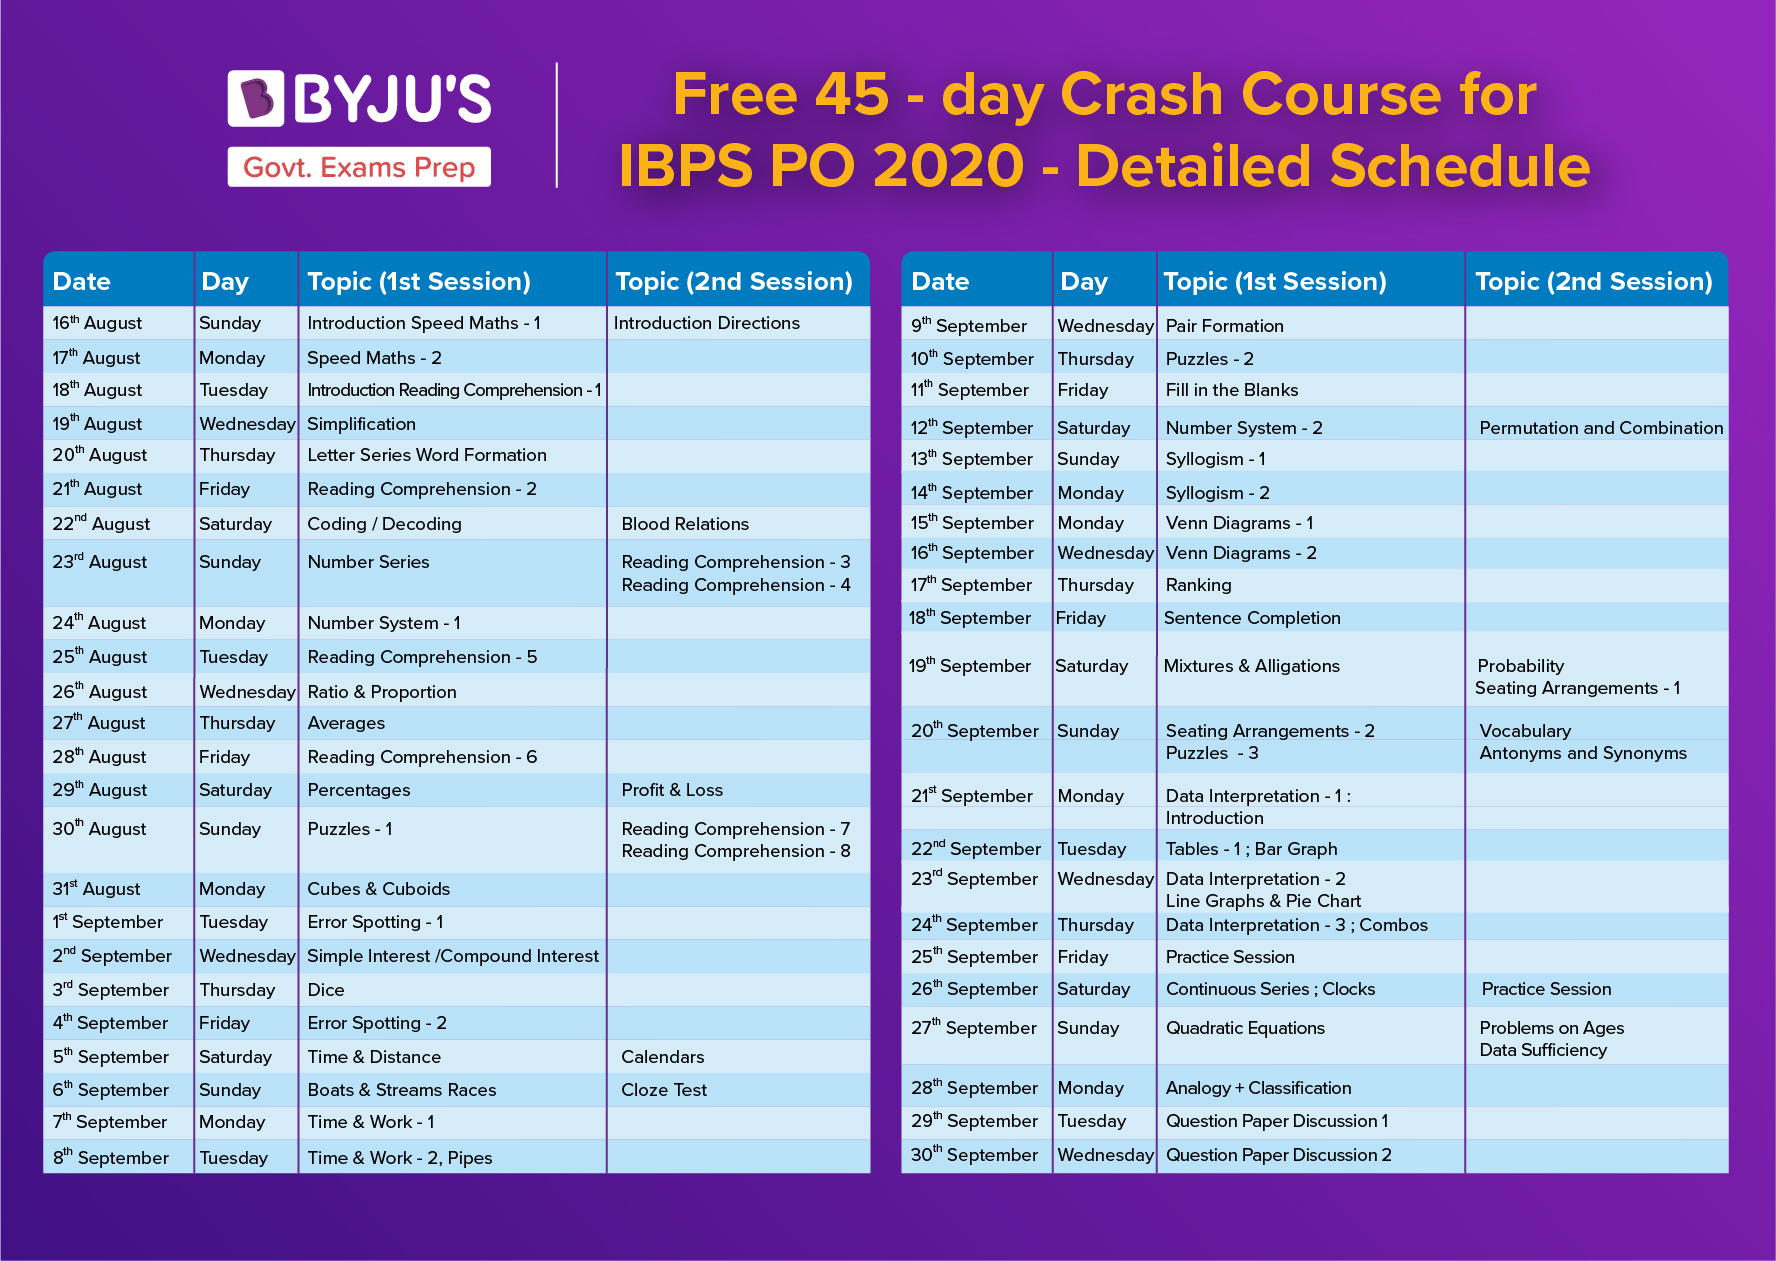 Schedule for the 45-Day Free IBPS PO Crash Course